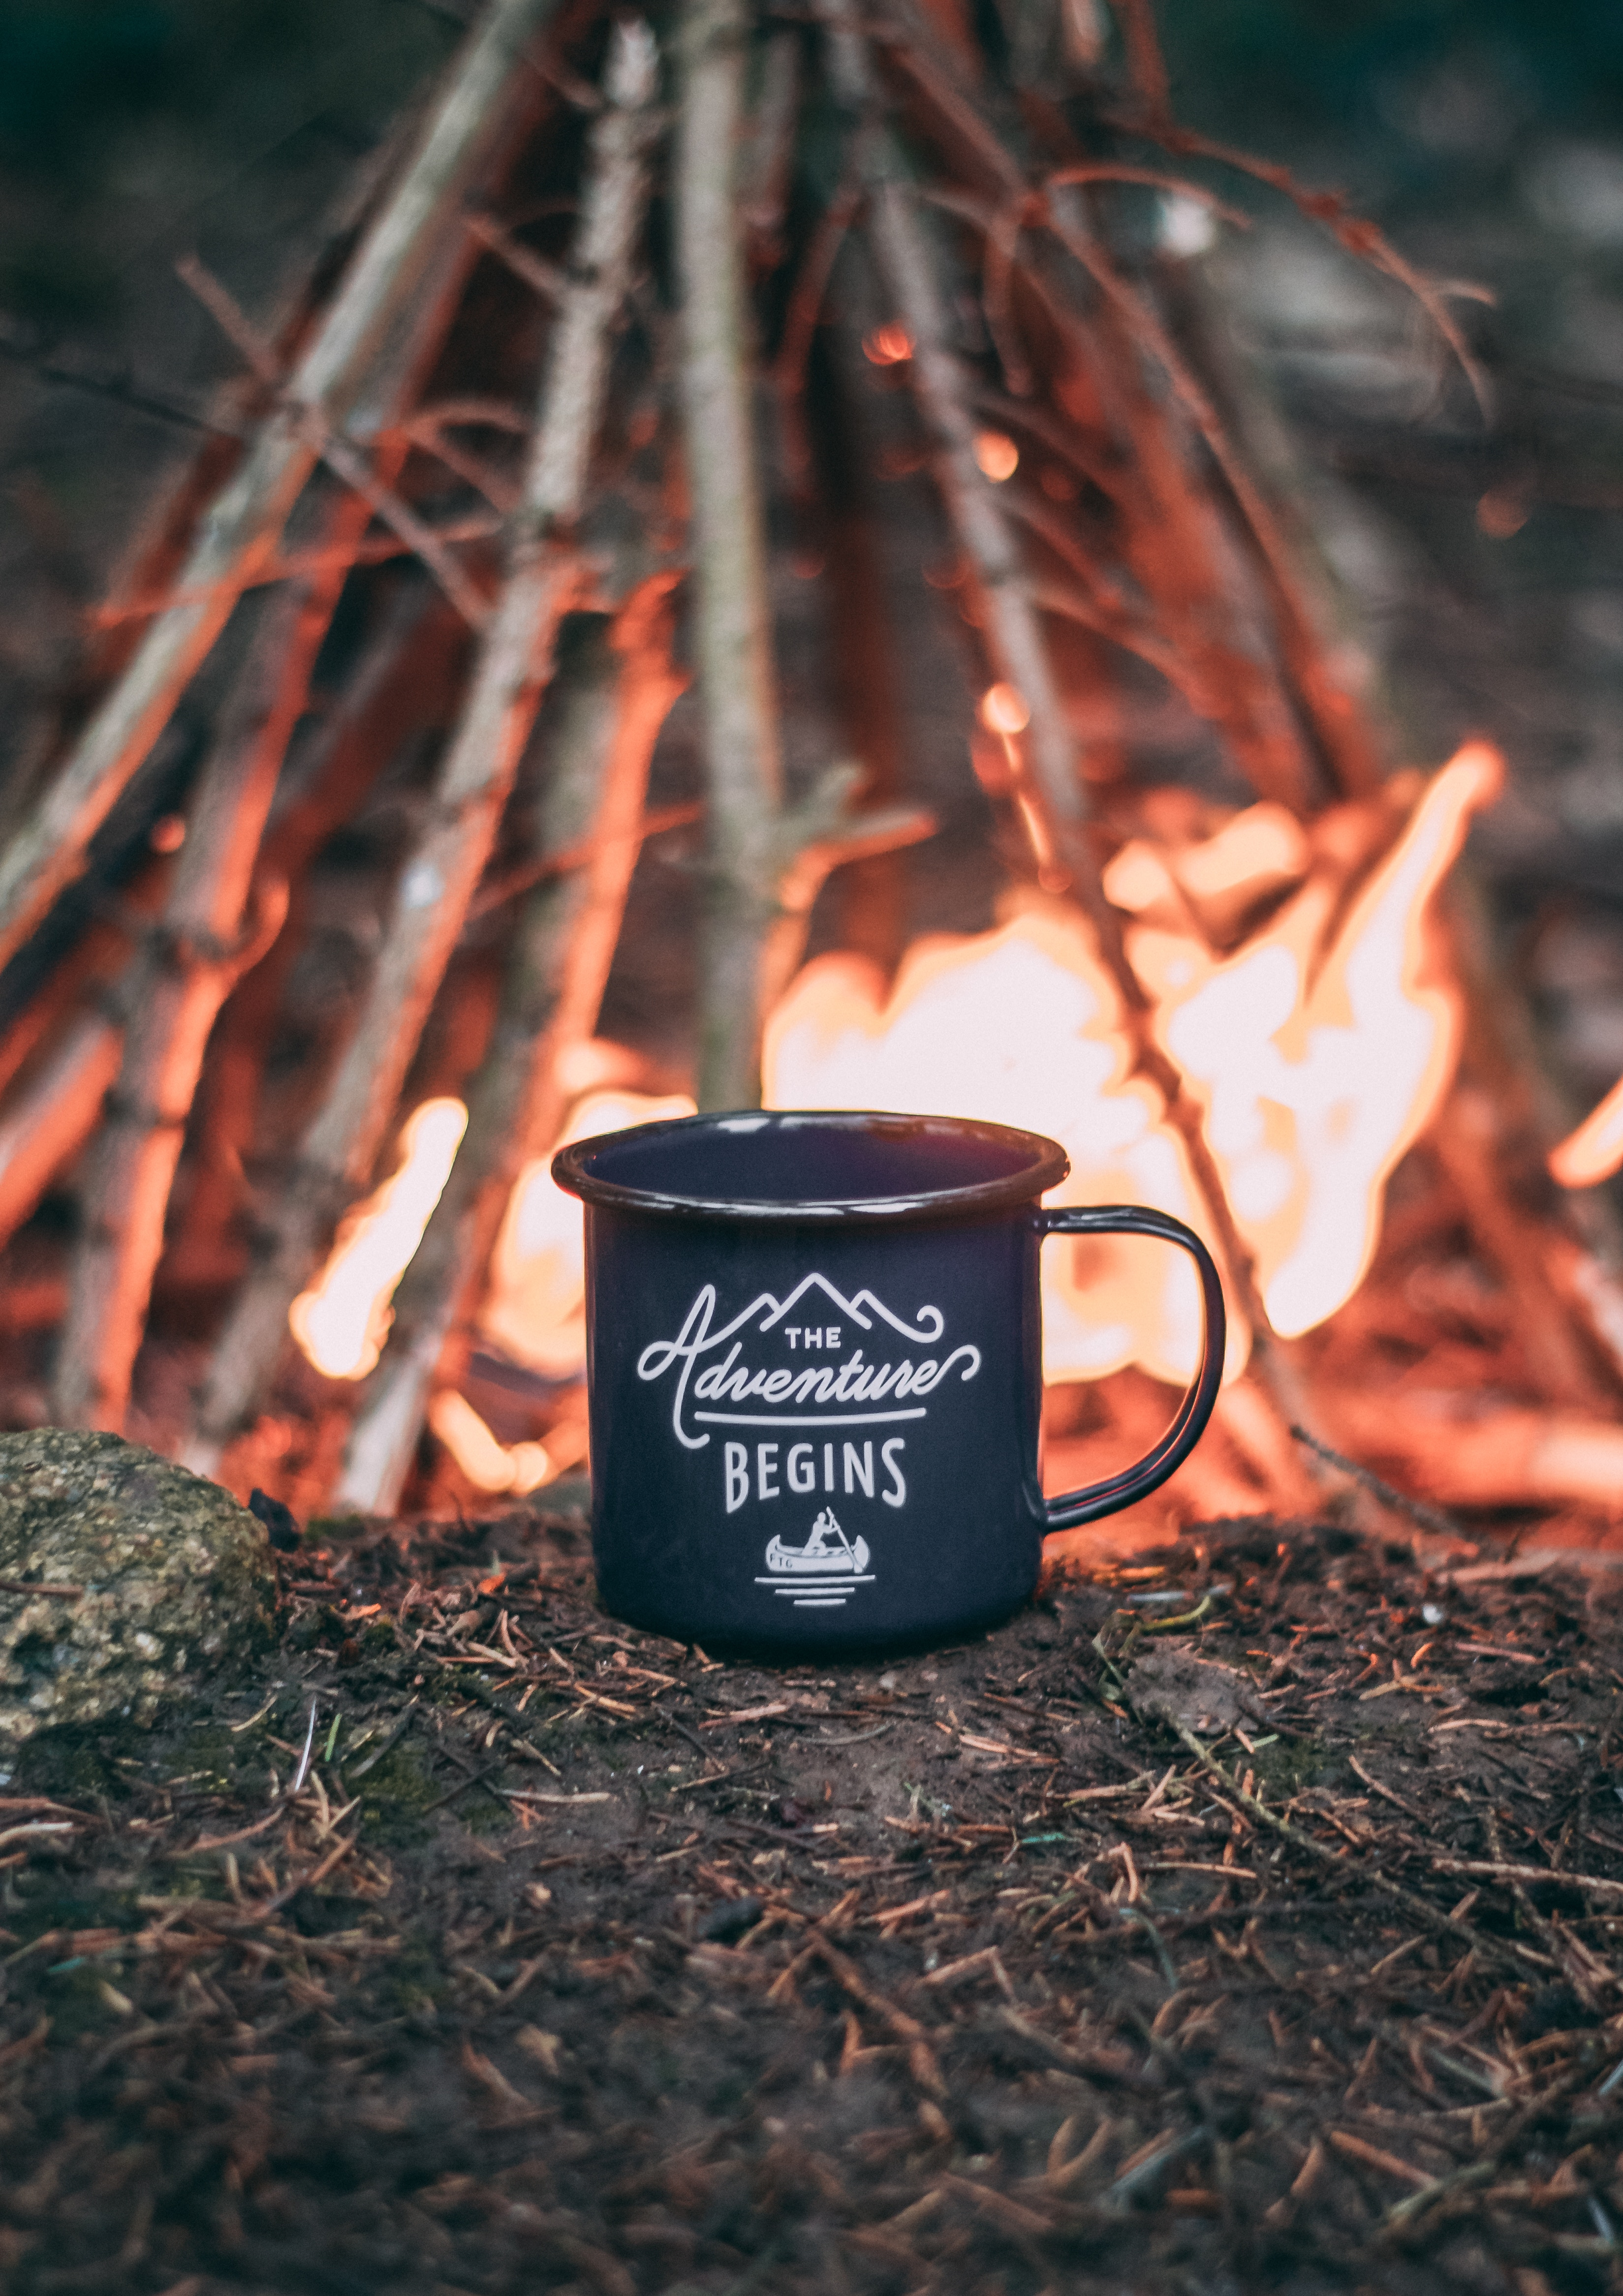 65924 download wallpaper Bonfire, Words, Cup, Journey, Camping, Campsite, Mug screensavers and pictures for free